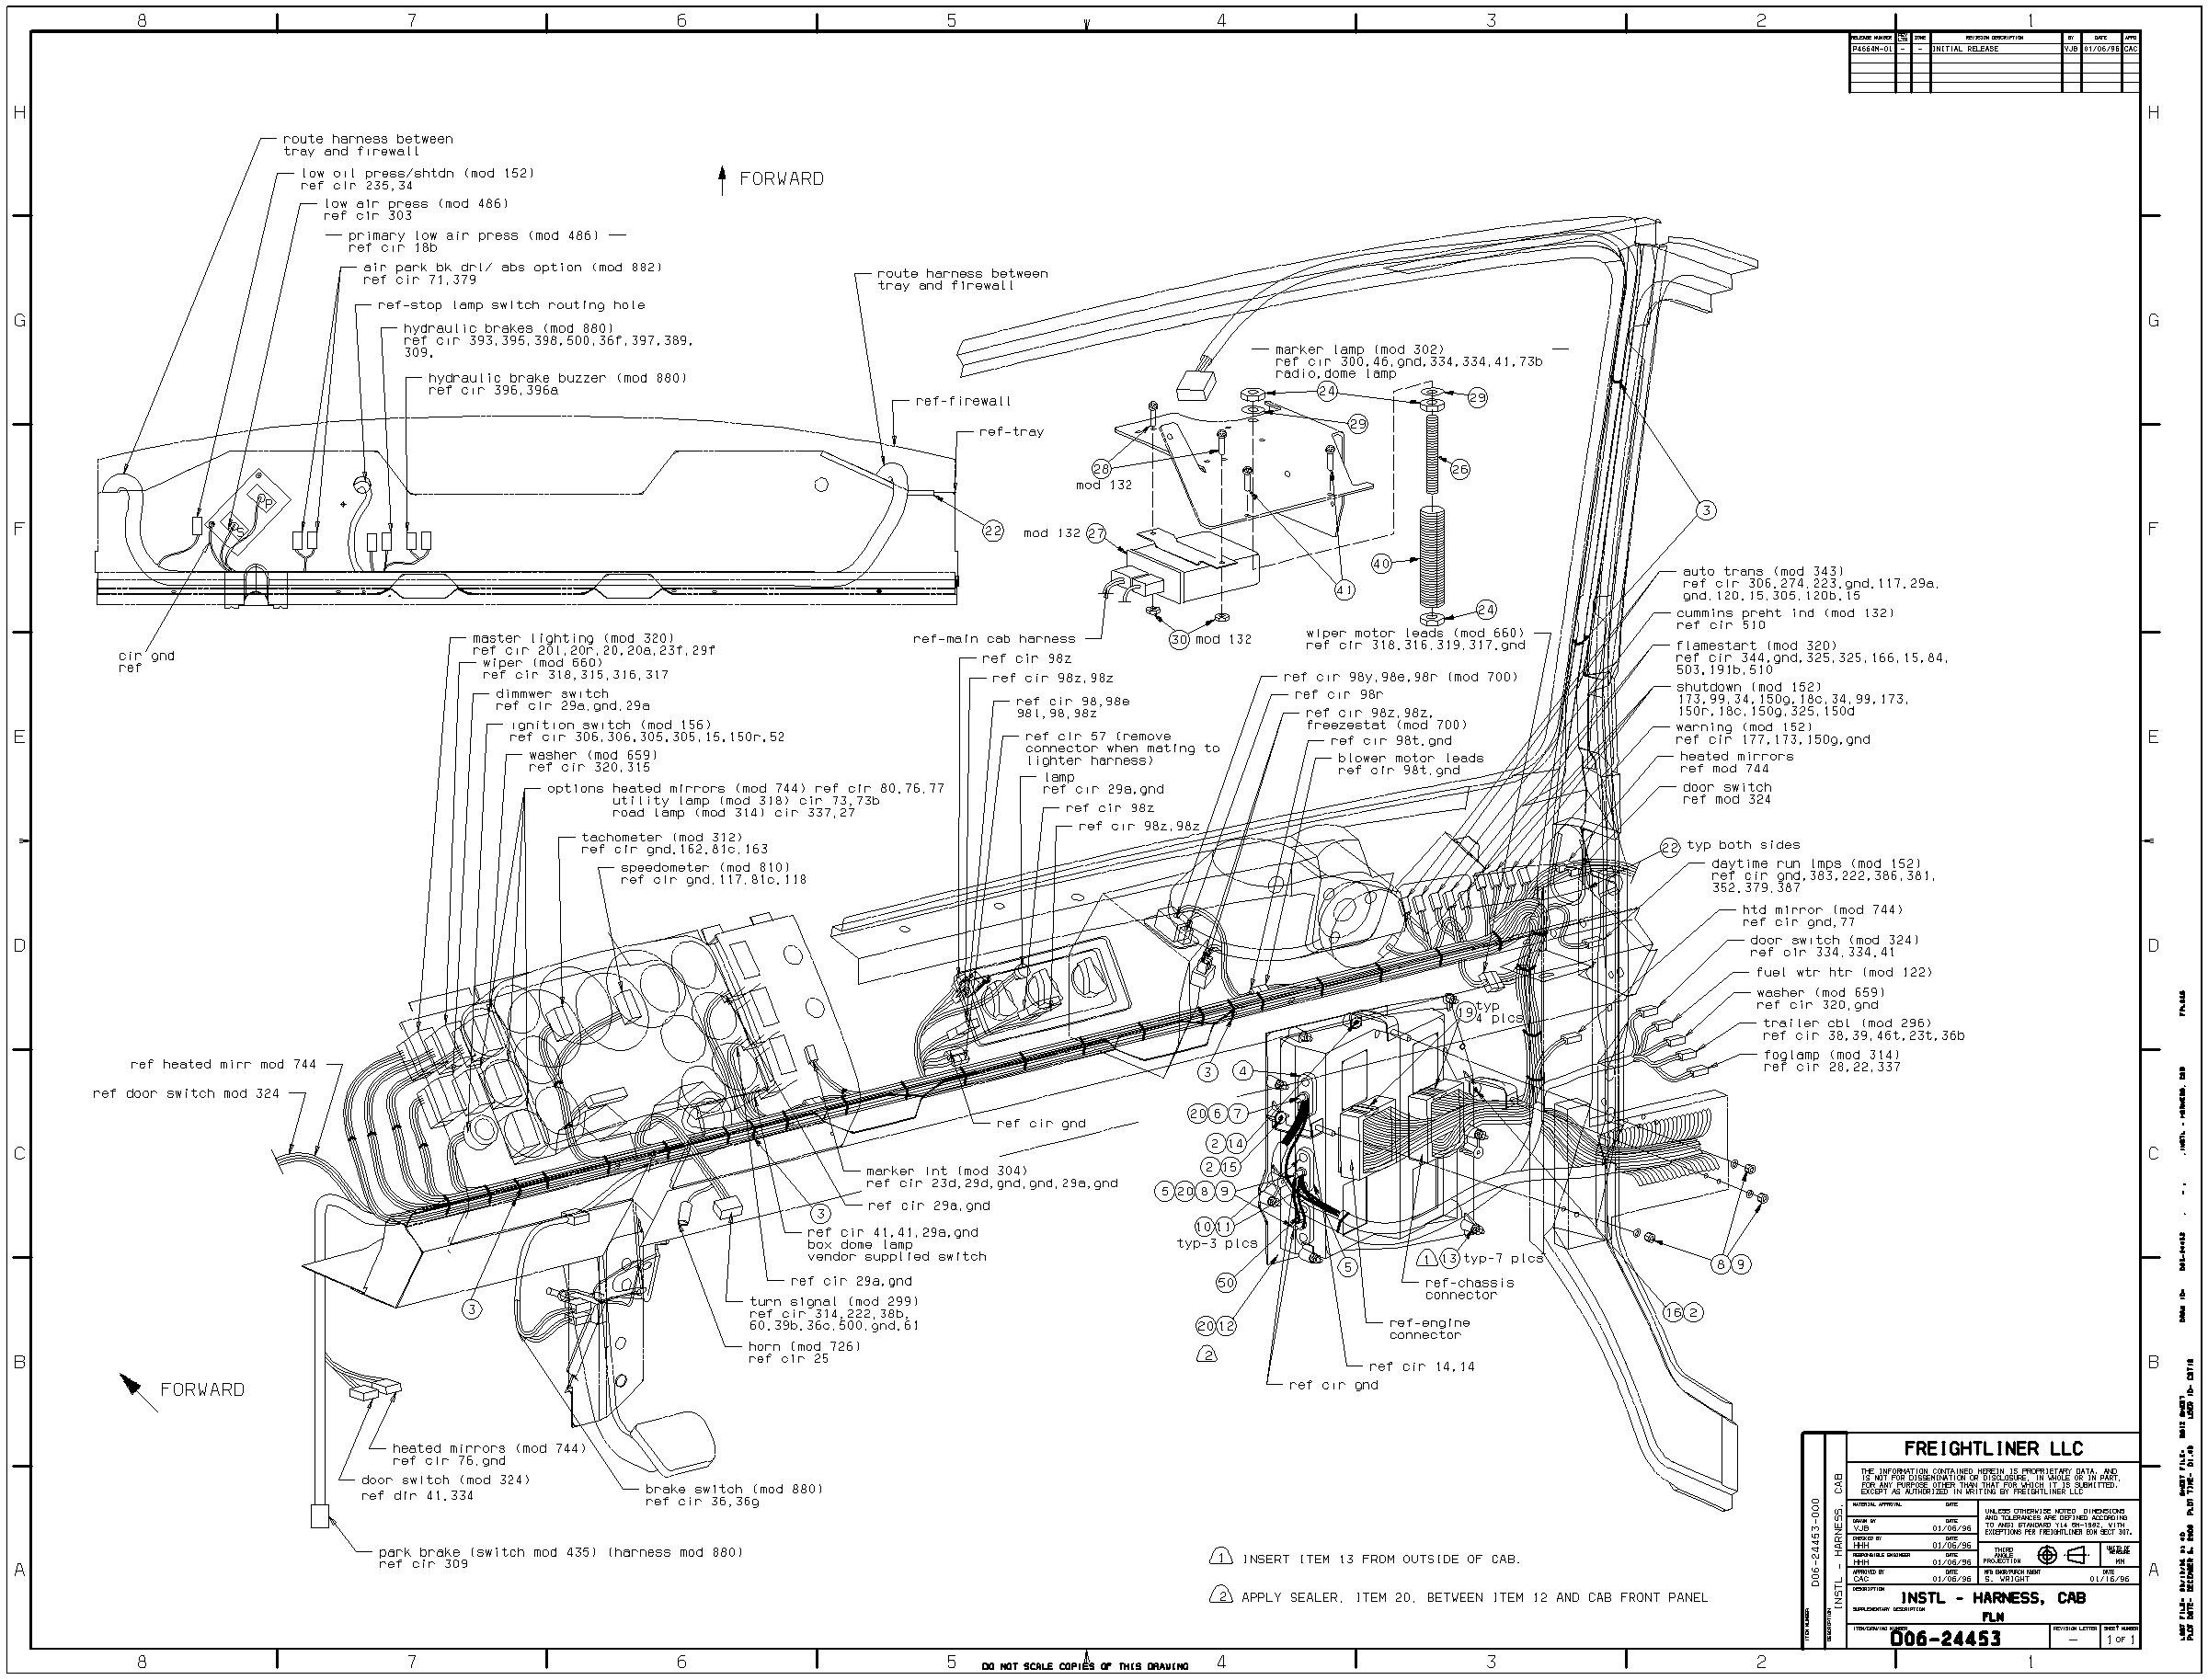 4f3bf0ae42df8d7941614d2dfd871856?resize=665%2C506 wiring diagrams for kenworth t800 the wiring diagram kenworth t600 wiring diagrams at crackthecode.co